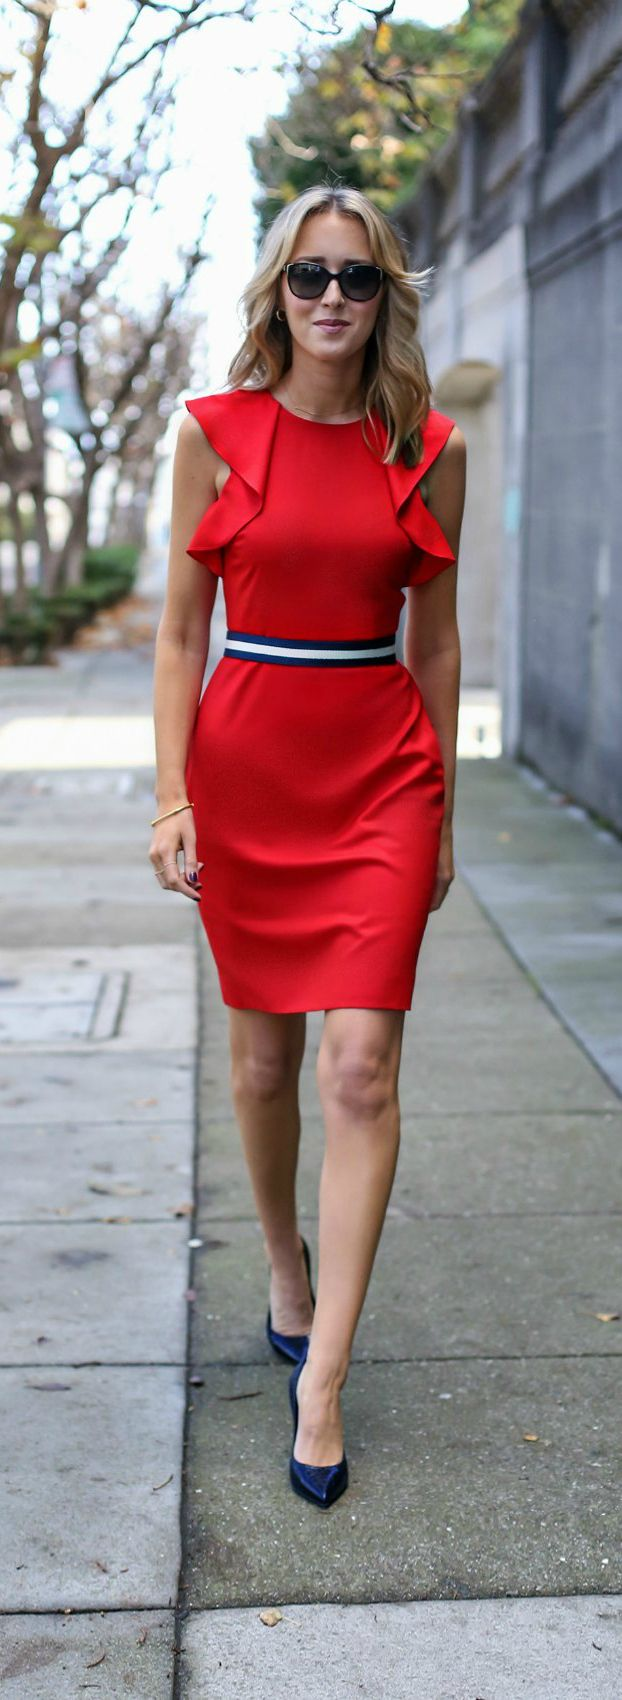 #30DRESSESin30DAYS - Day 2 - Veteran's Day Dress - red flutter sleeve sheath dress with navy and white belt